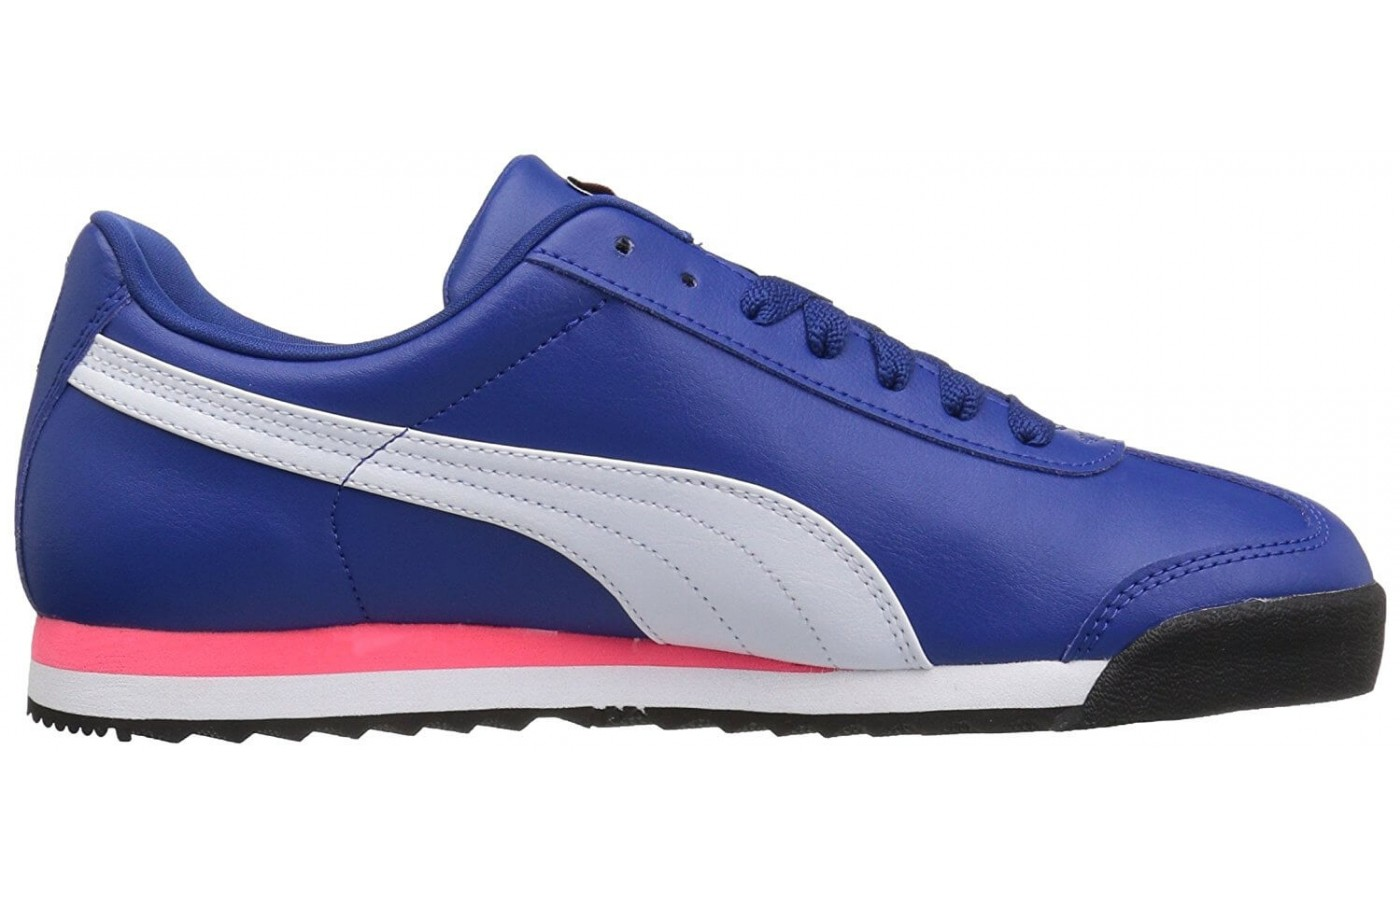 The Puma Roma has EVA cushioning